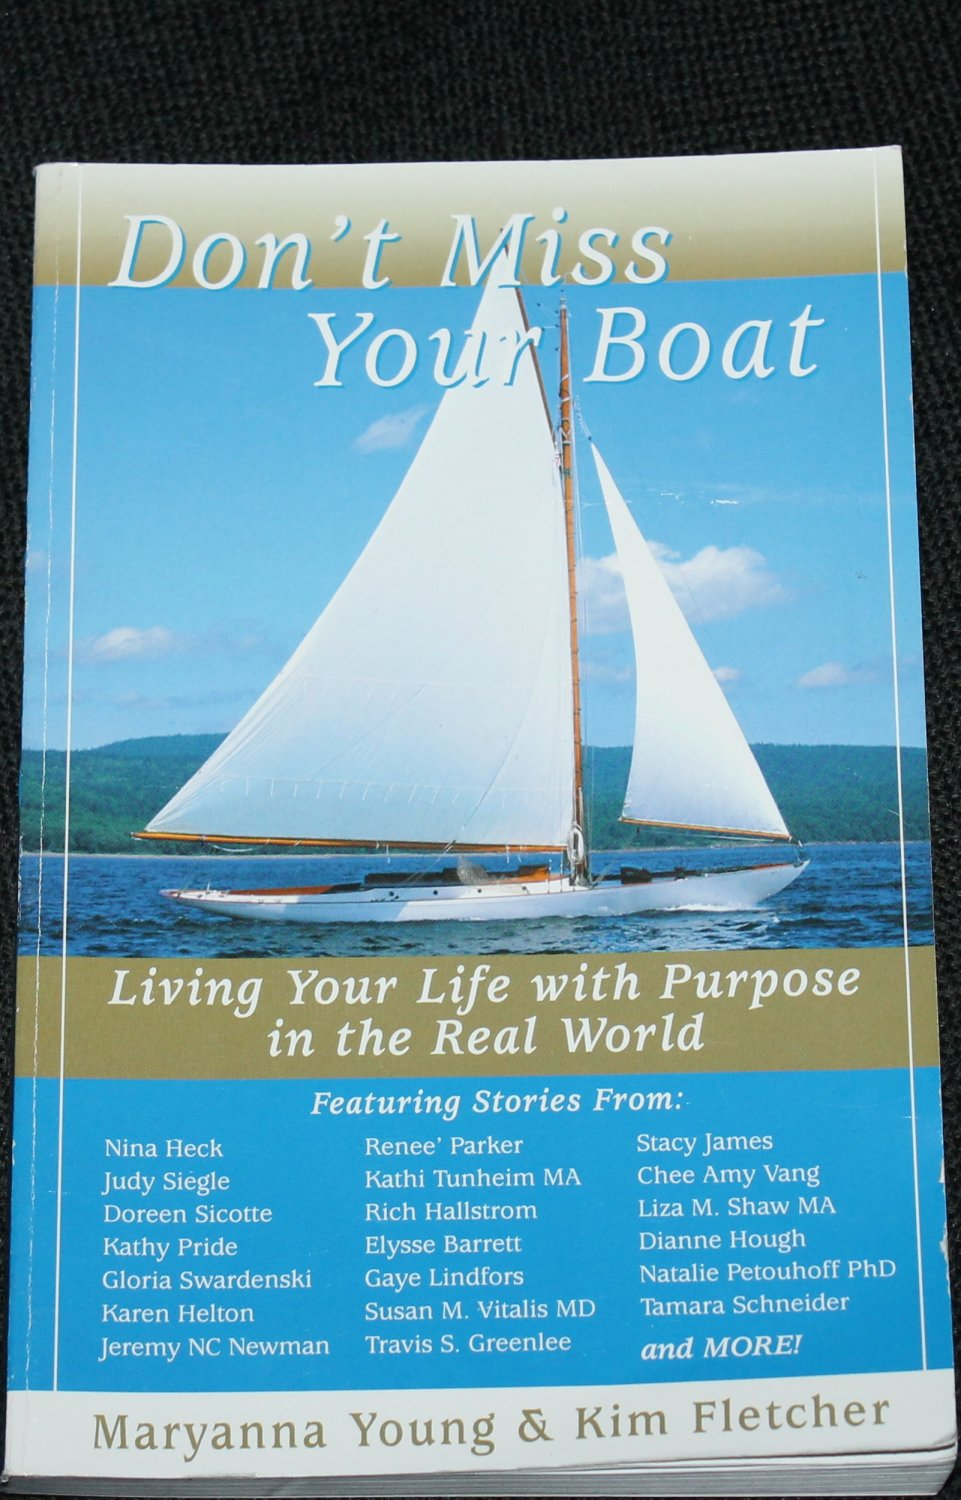 Don't Miss Your Boat - Christian religious book - religious reading